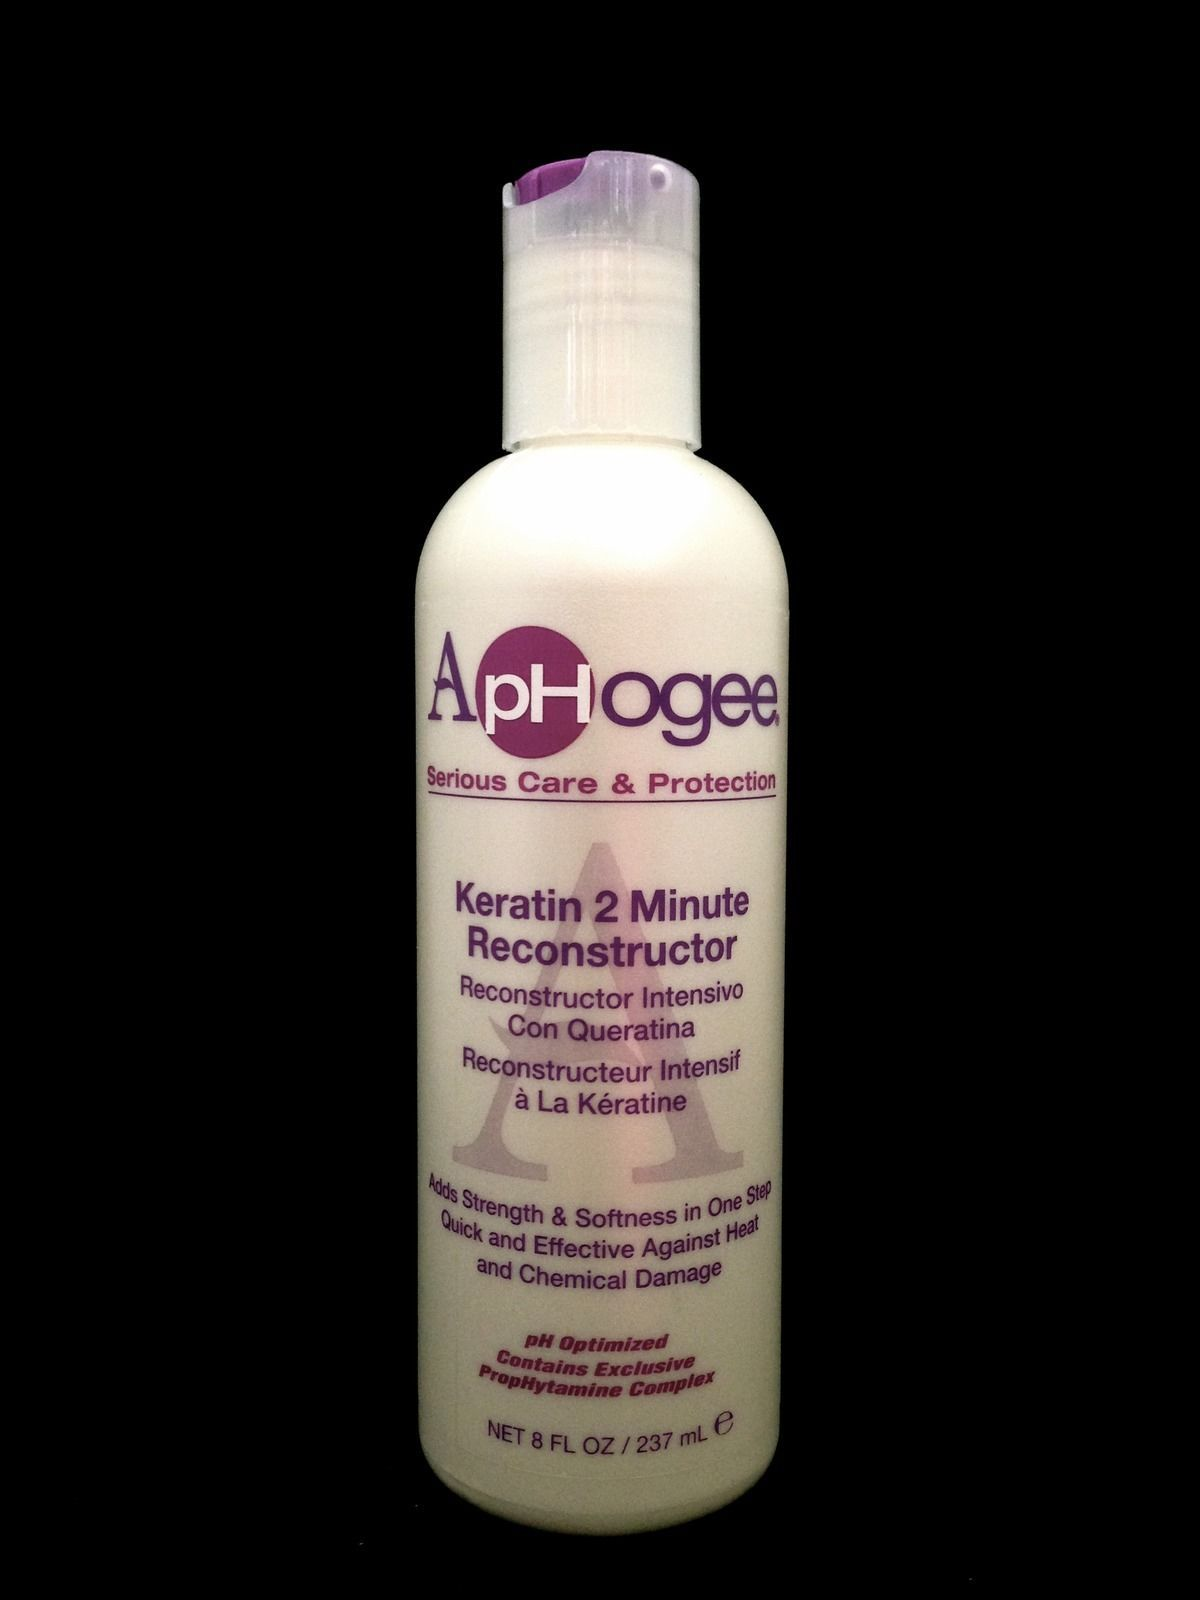 APHOGEE KERATIN 2 MINUTE RECONSTRUCTOR ADDS STRENGTH & SOFTNESS IN ONE STEP 8oz